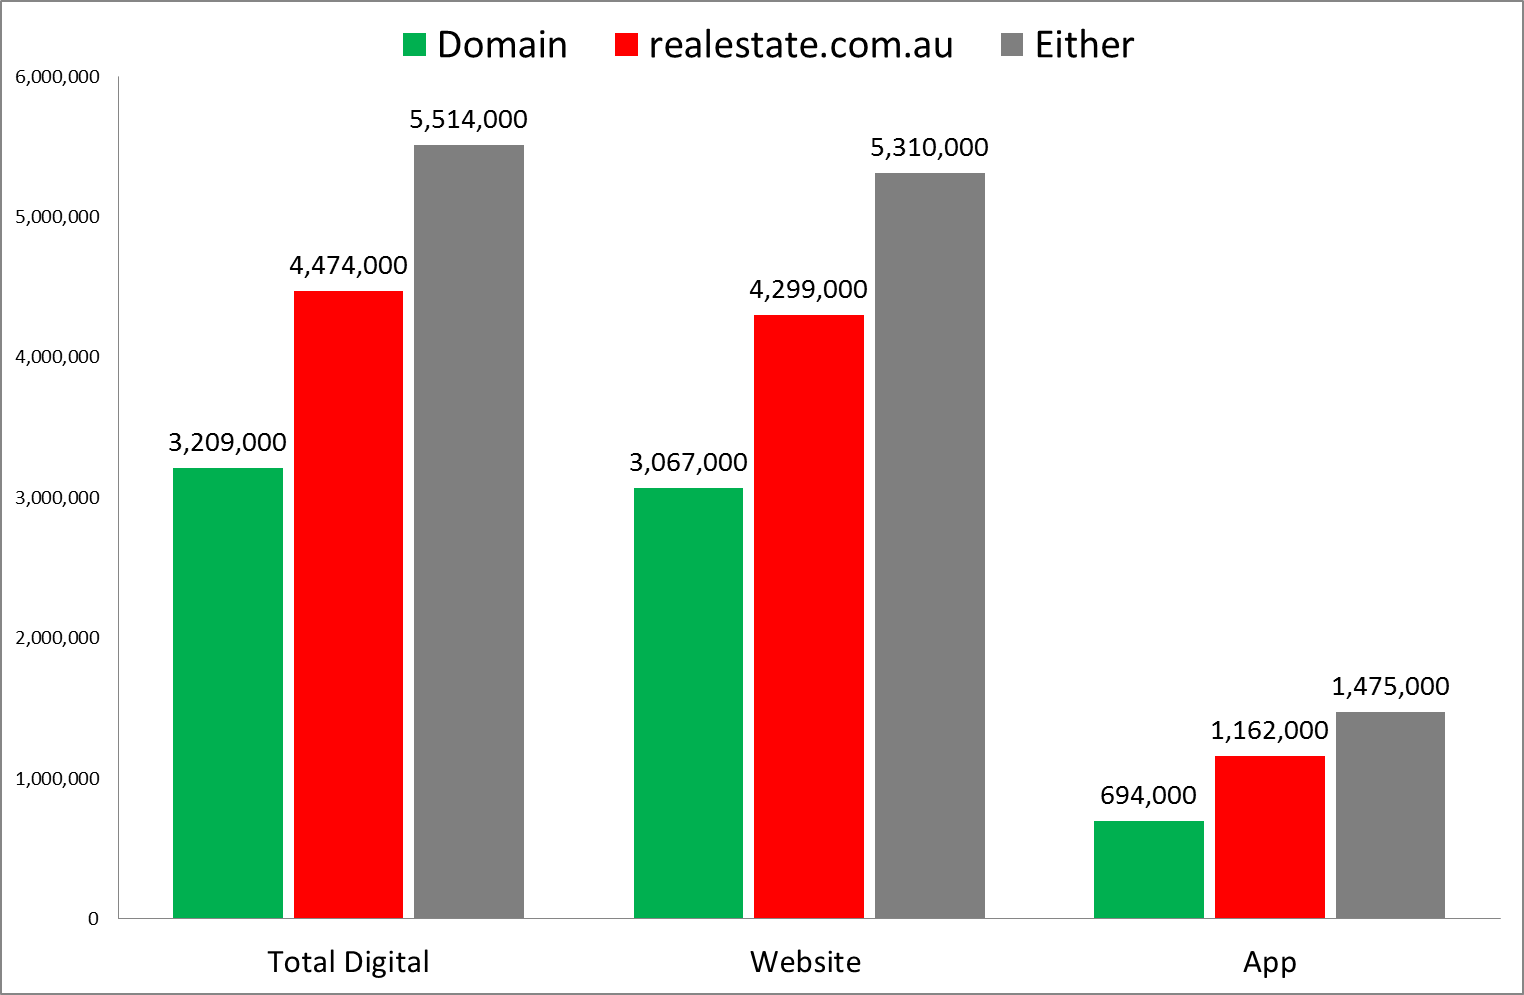 realestate com au still leads with 4 5m visitors vs 3 2m for domain